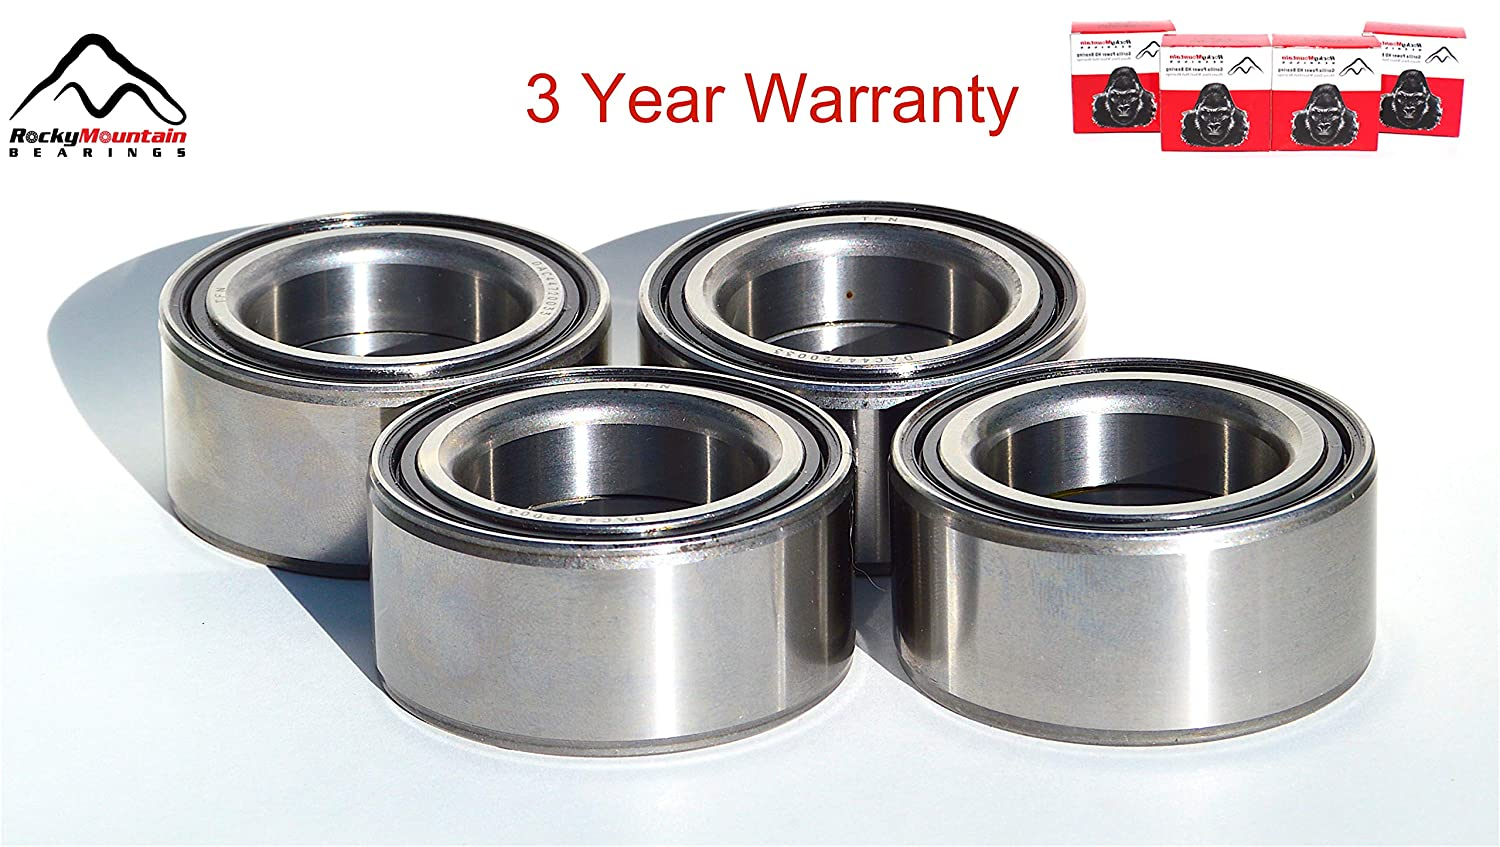 Exceeds OEM Polaris Ranger 700 500 XP EFI 6x6 2x4 4x4 Compatible Front and Rear Wheel Bearings